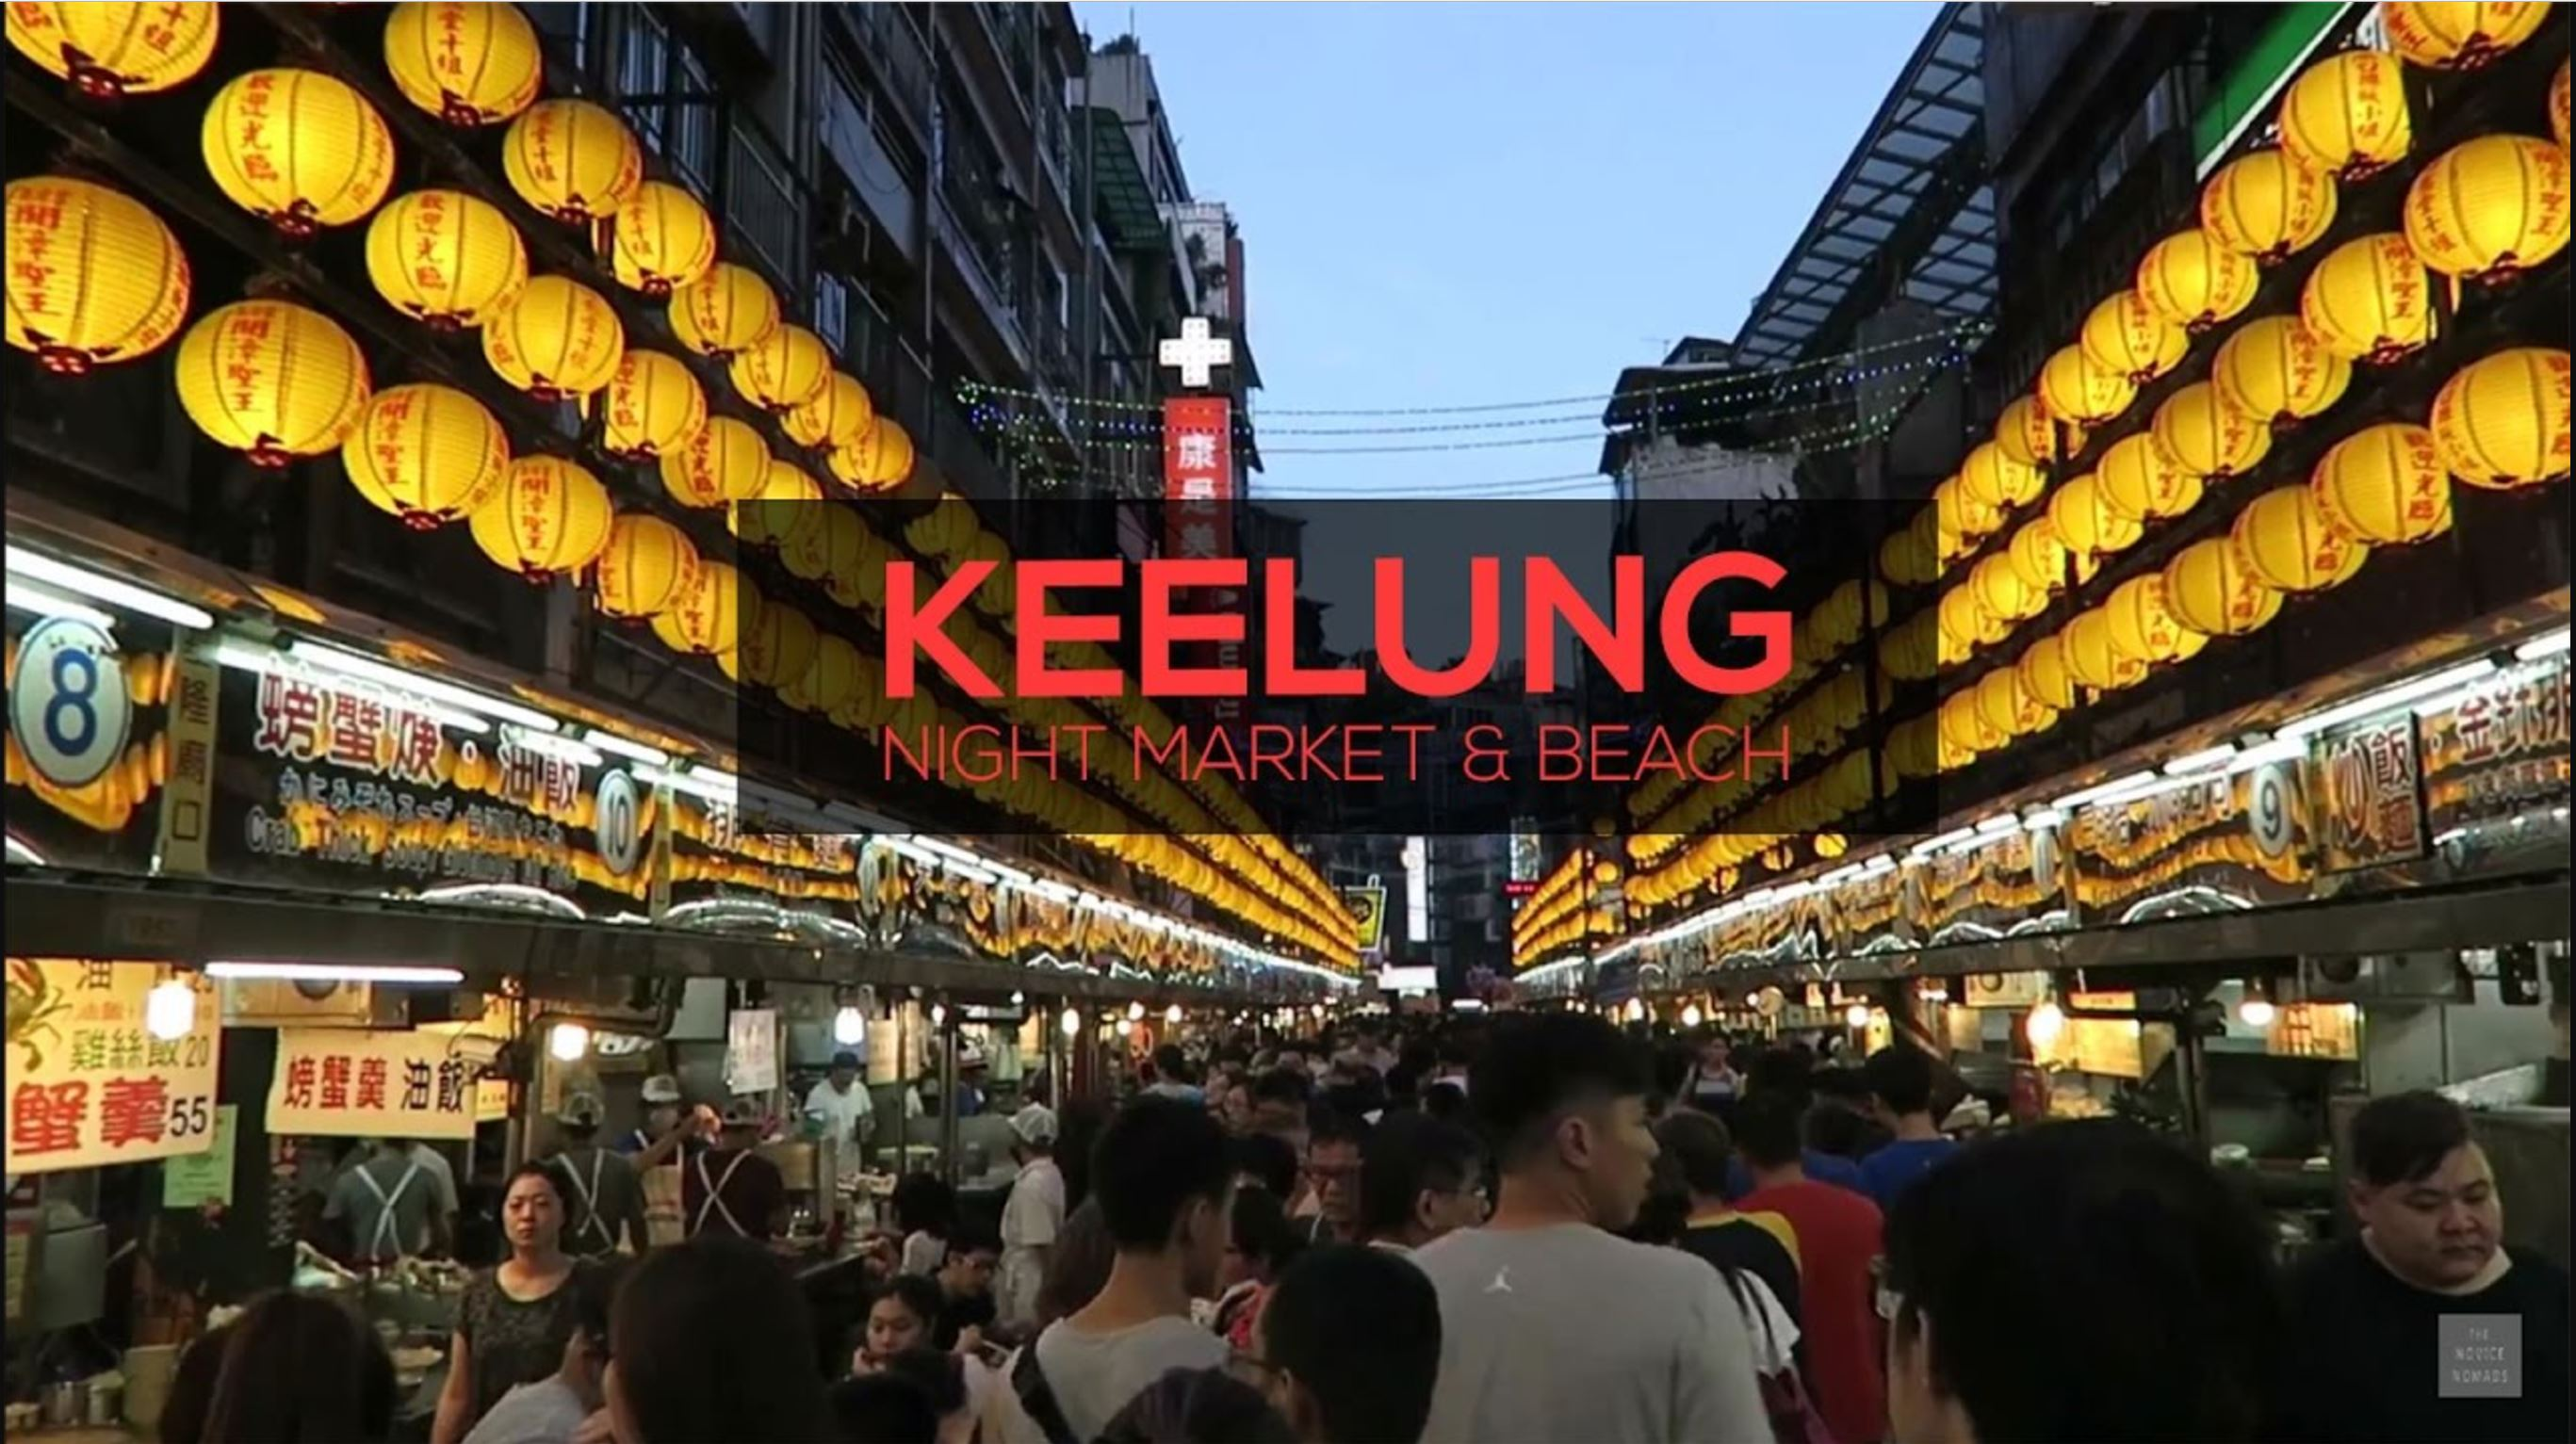 Famous Jiufen town & Keelung city night market